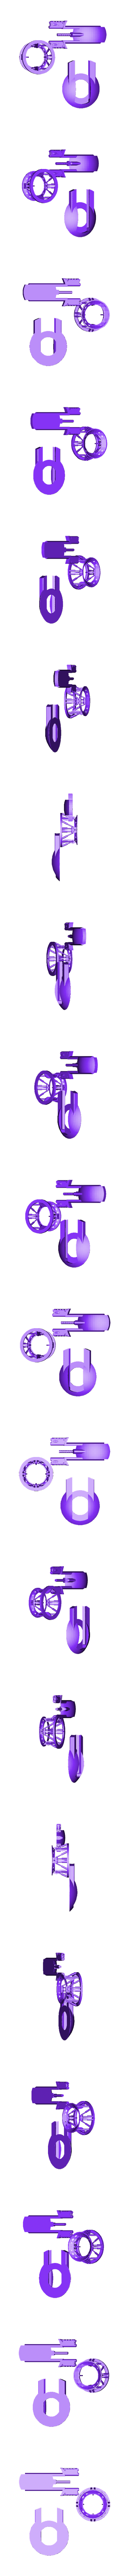 logitech_sphere_-_oblivision4.stl Download free STL file LogiTech Sphere - Oblivision addon • 3D printable model, Interceptor